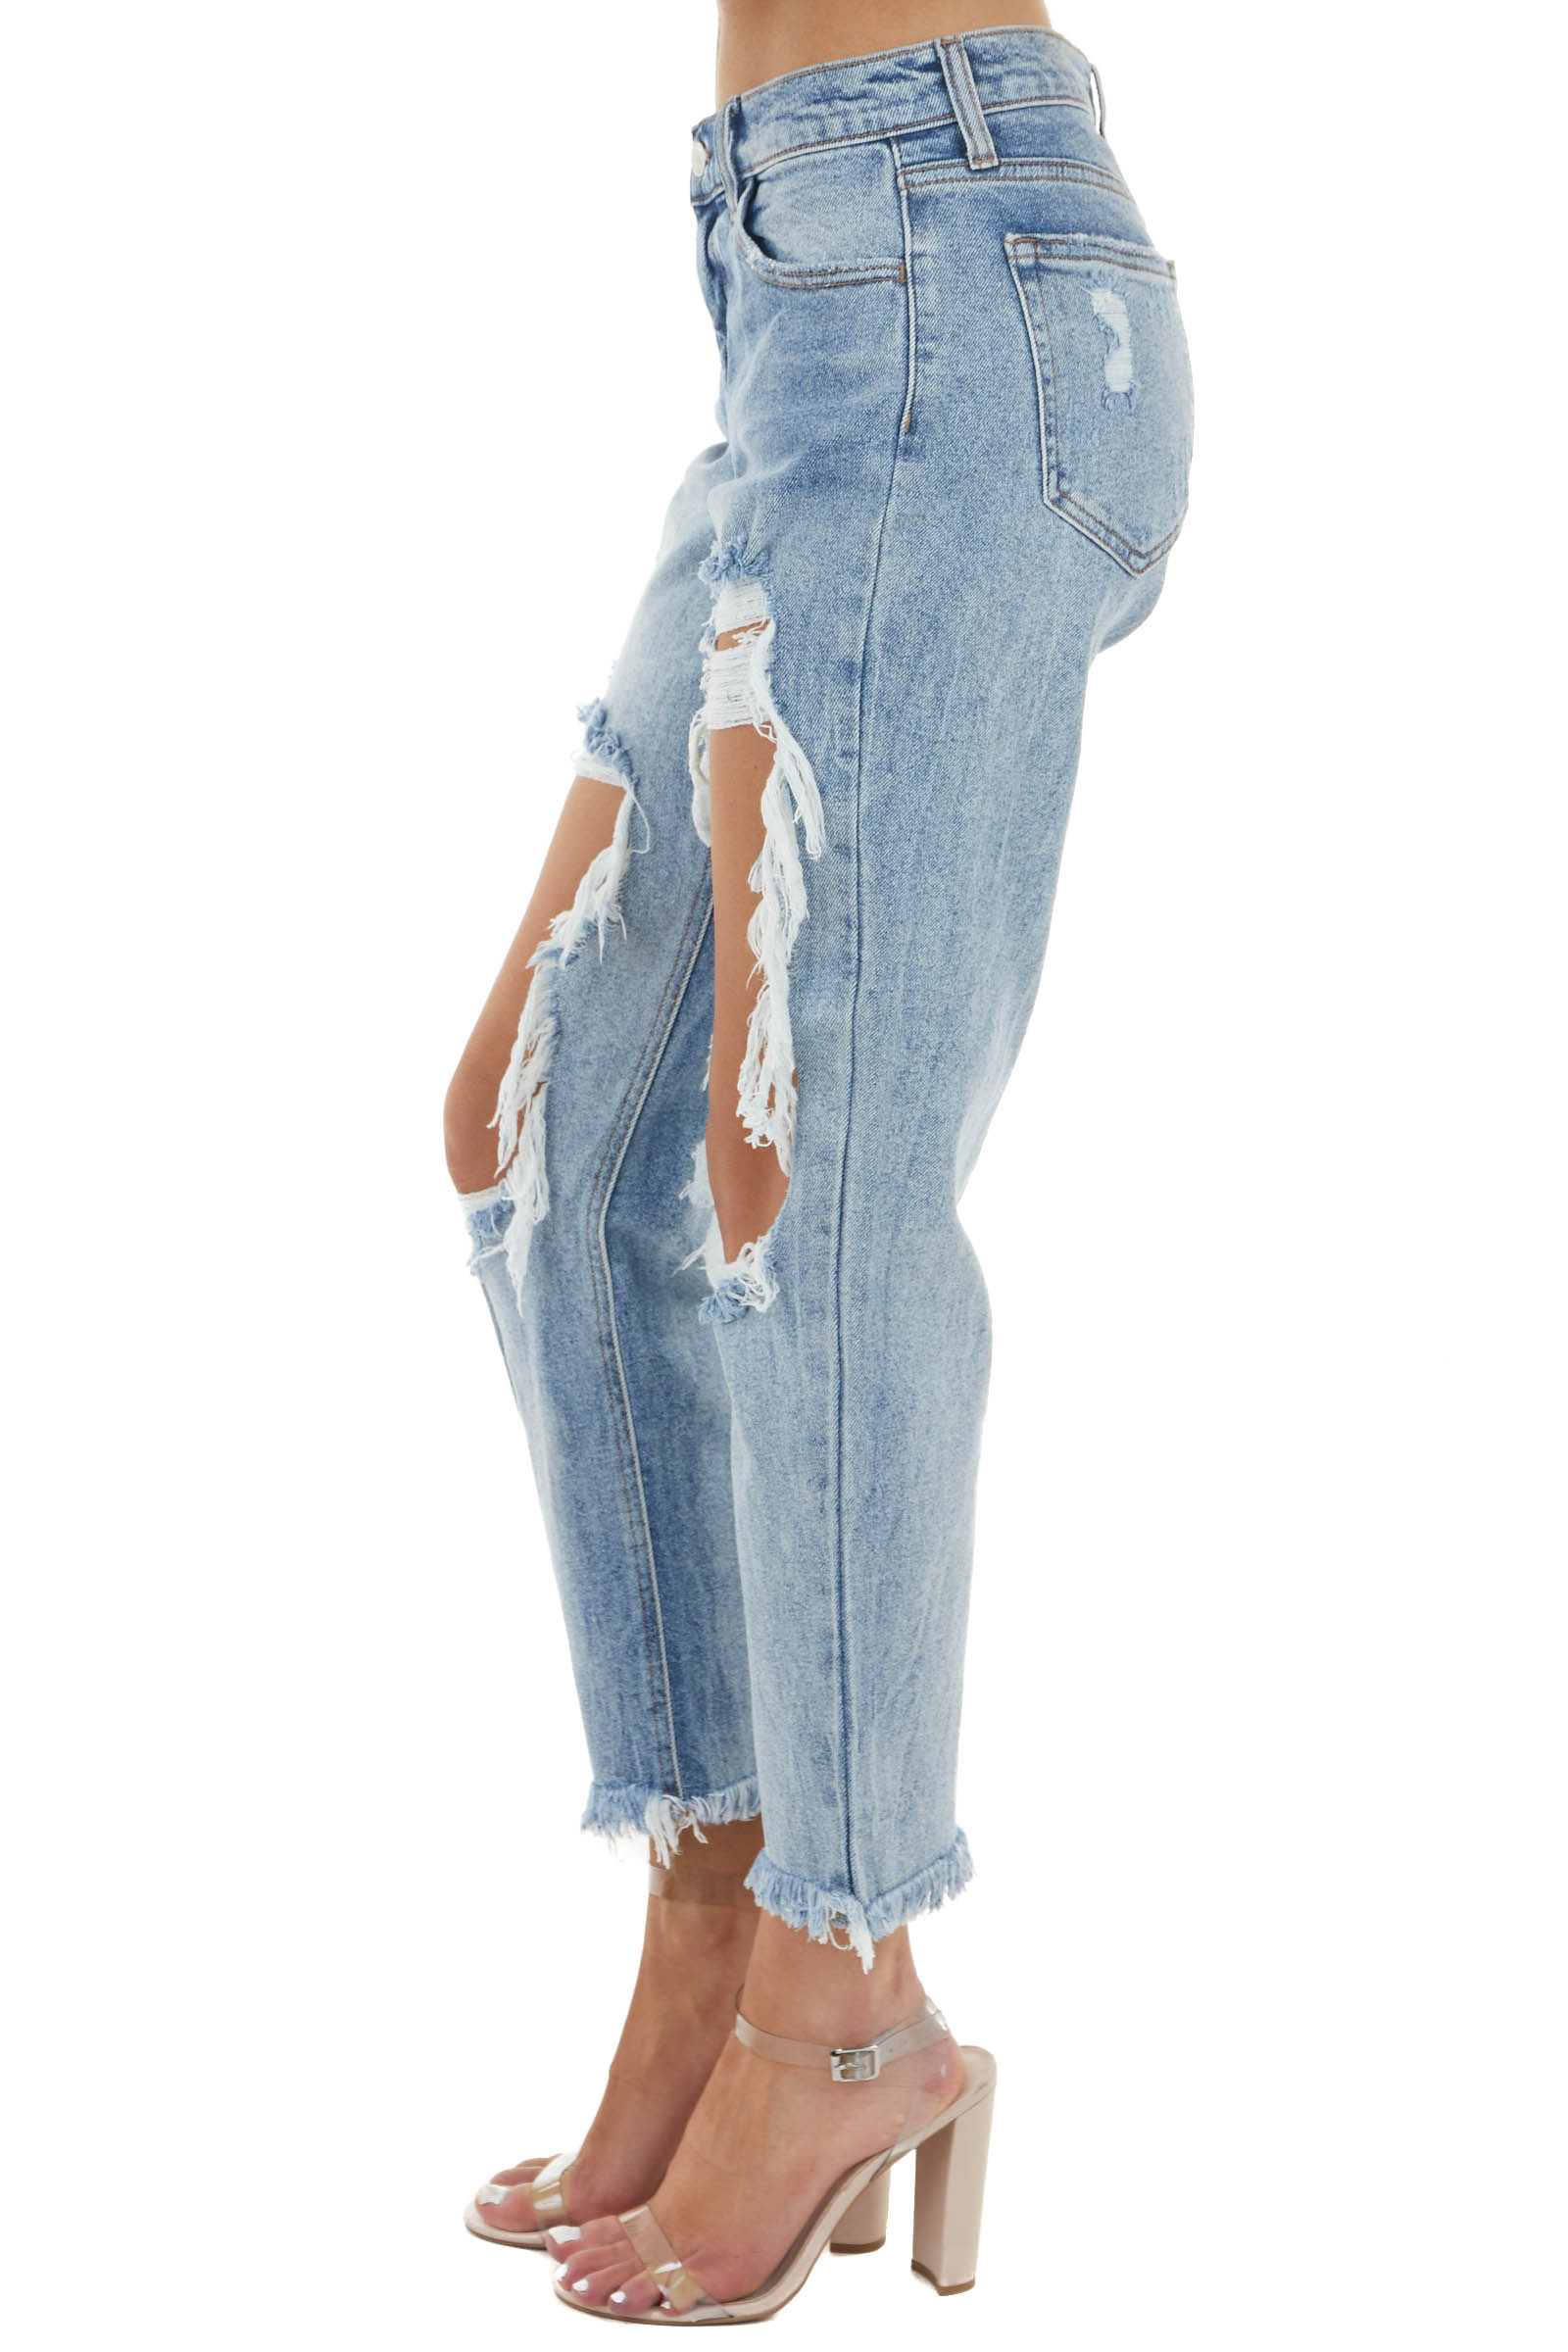 Medium Wash Mid Rise Distressed Jeans with Frayed Detail